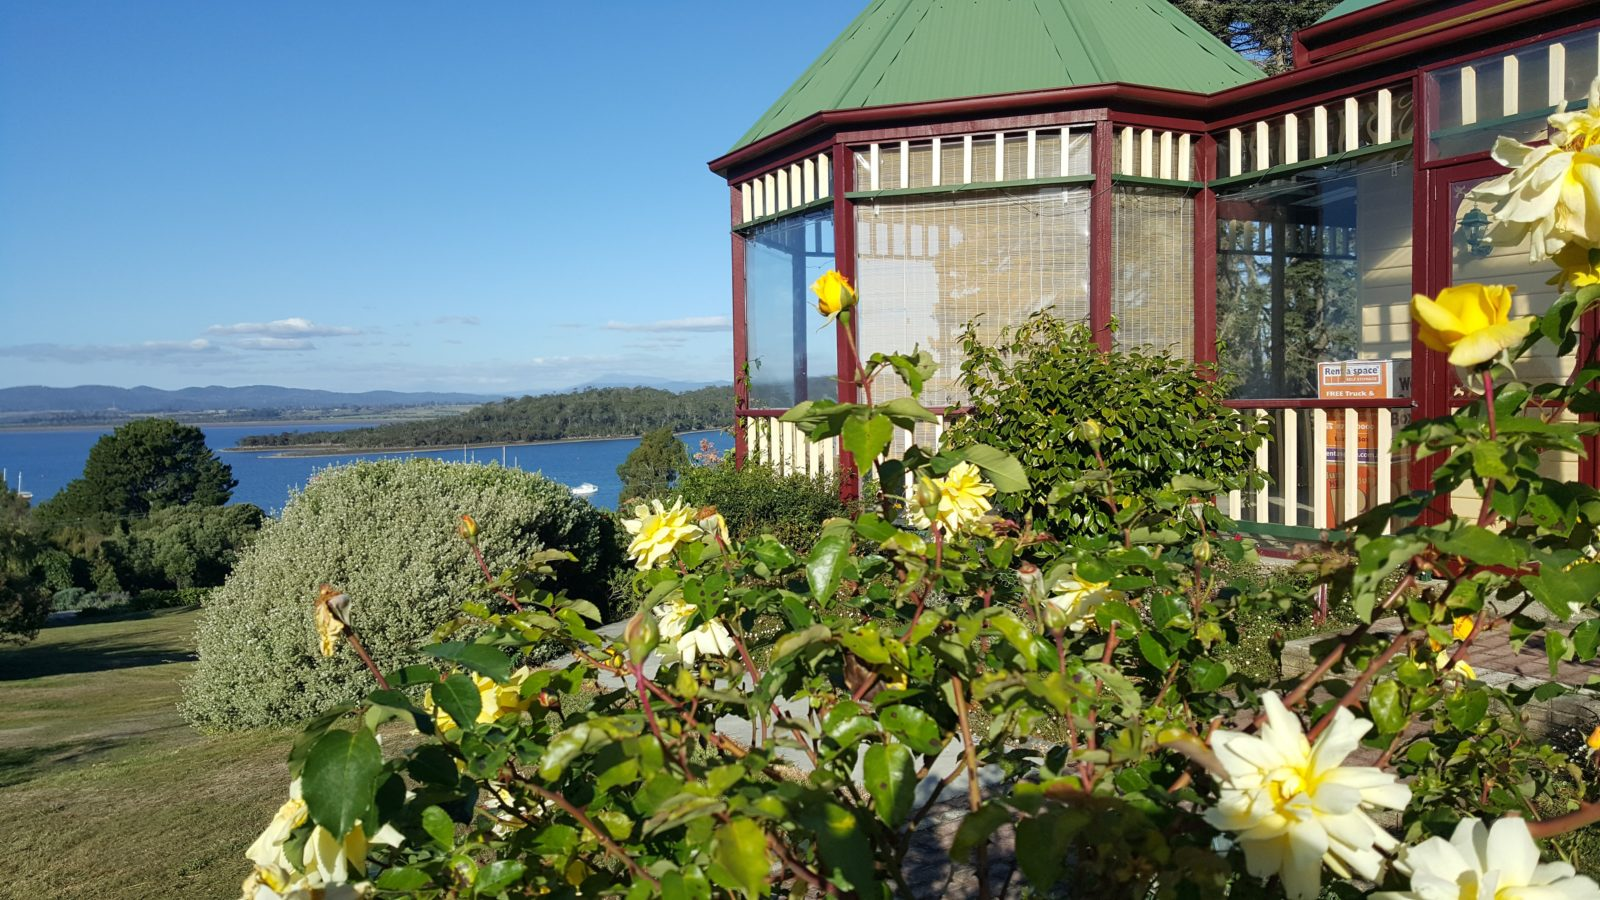 The lovely gardens and rotunda overlooking the beautiful Tamar River